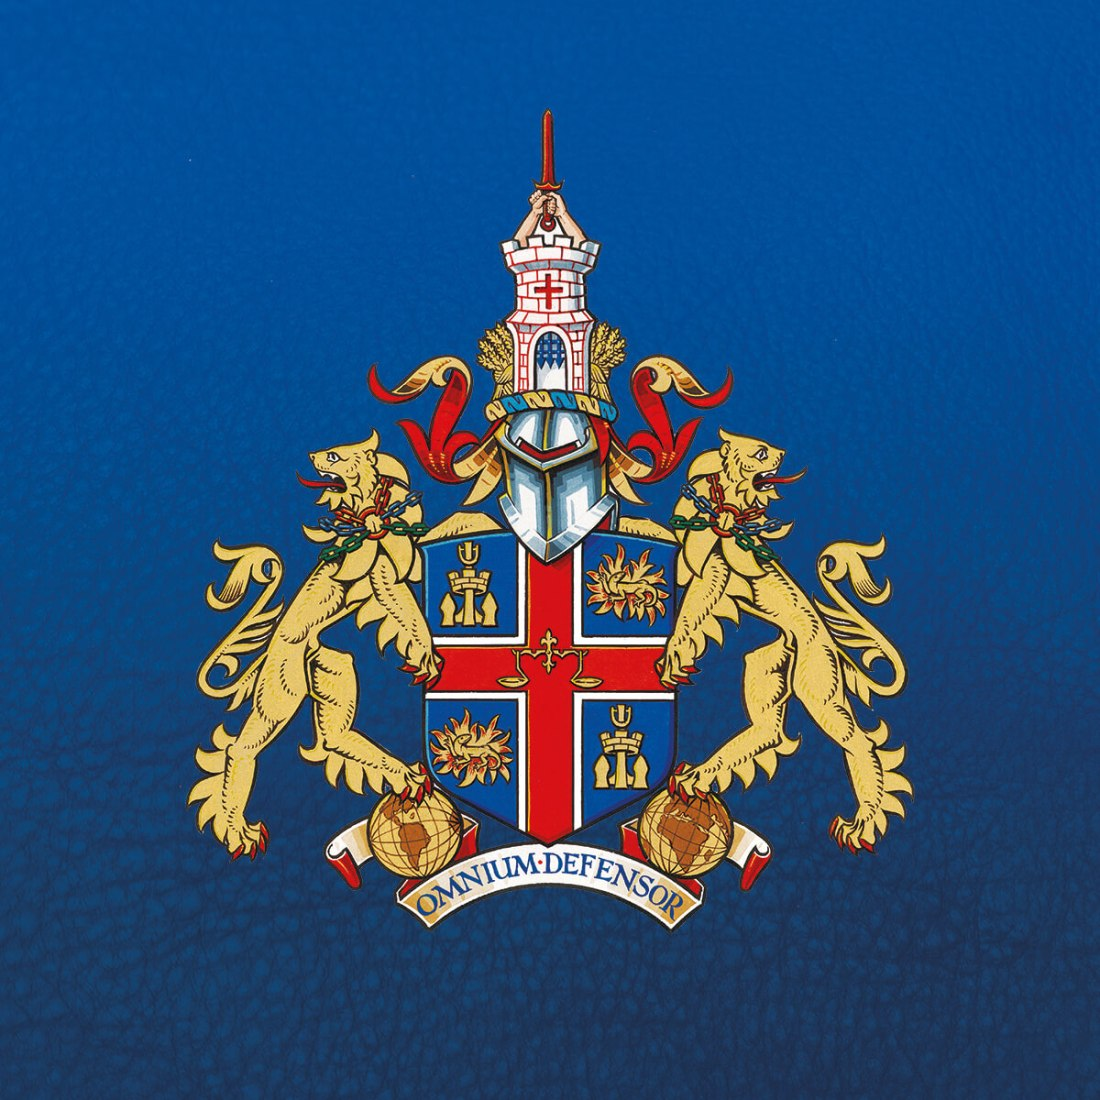 The Worshipful Company of Insurers